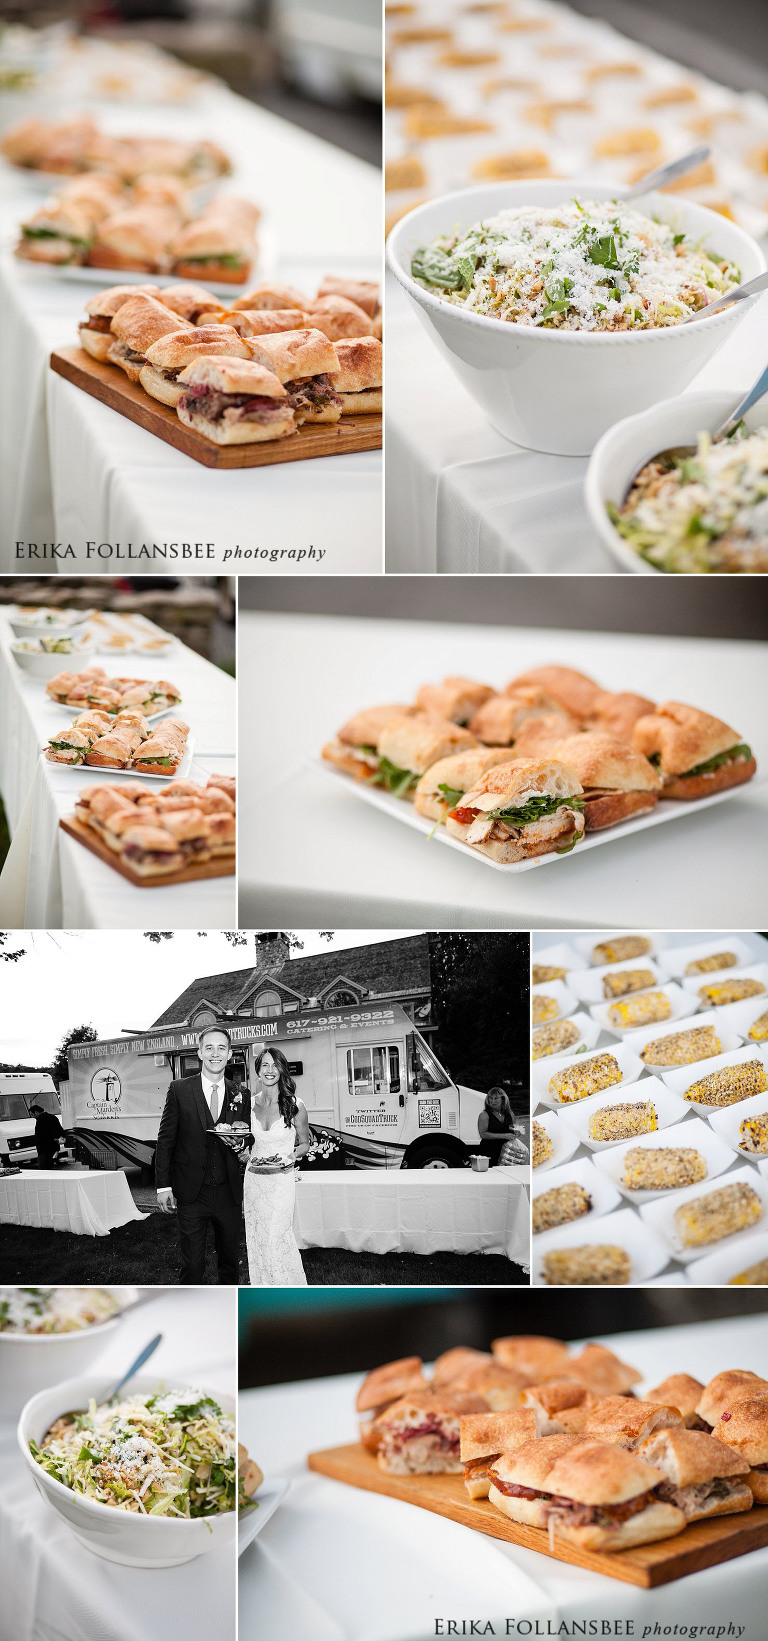 Pennypackers food truck served gourmet sandwiches